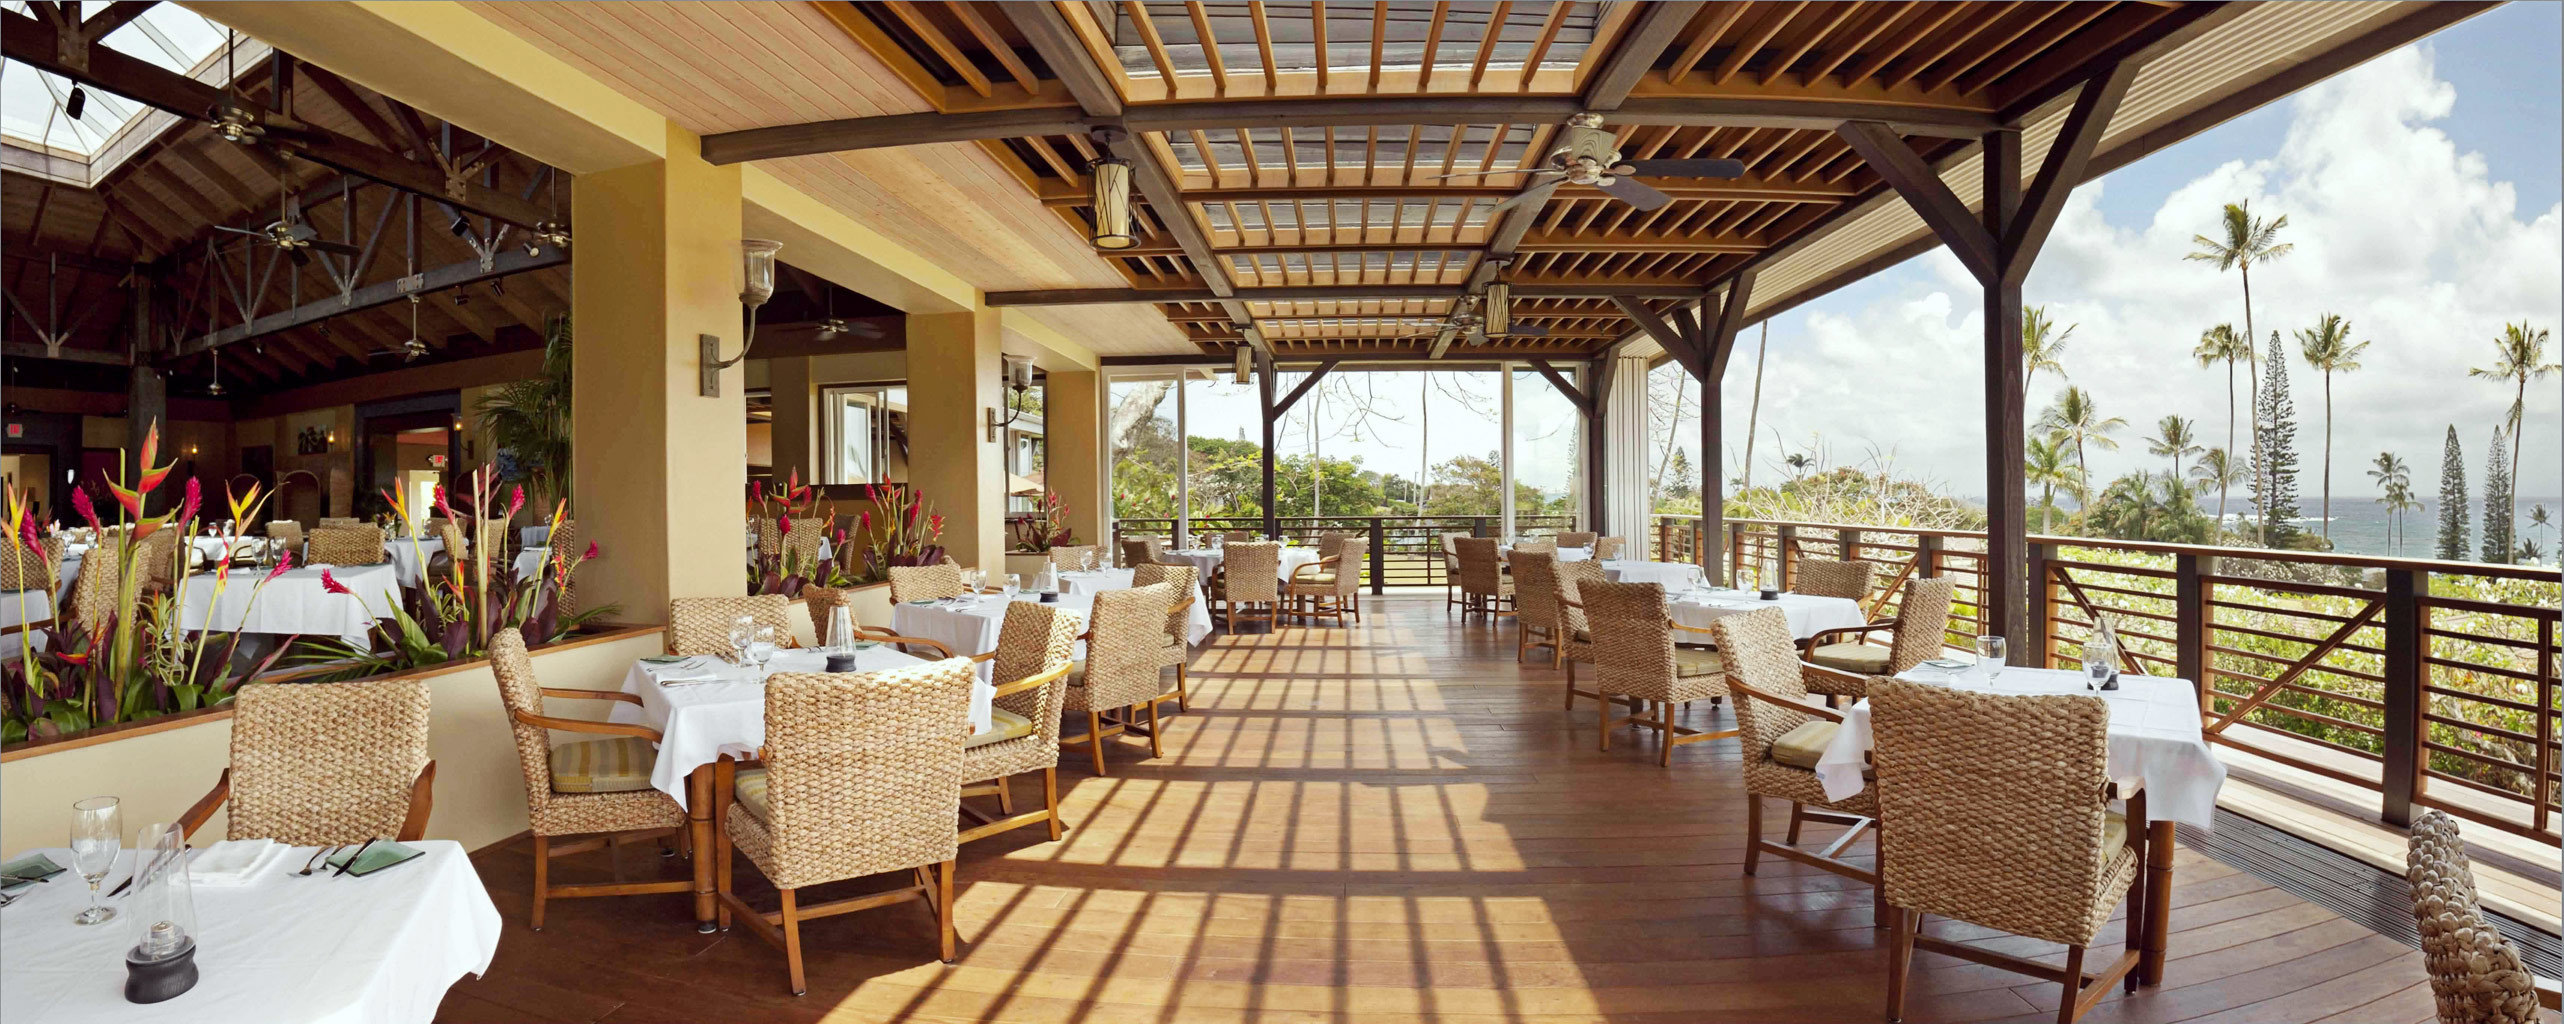 Dining Eat Outdoors Rustic Waterfront chair Resort restaurant function hall aisle Villa cottage